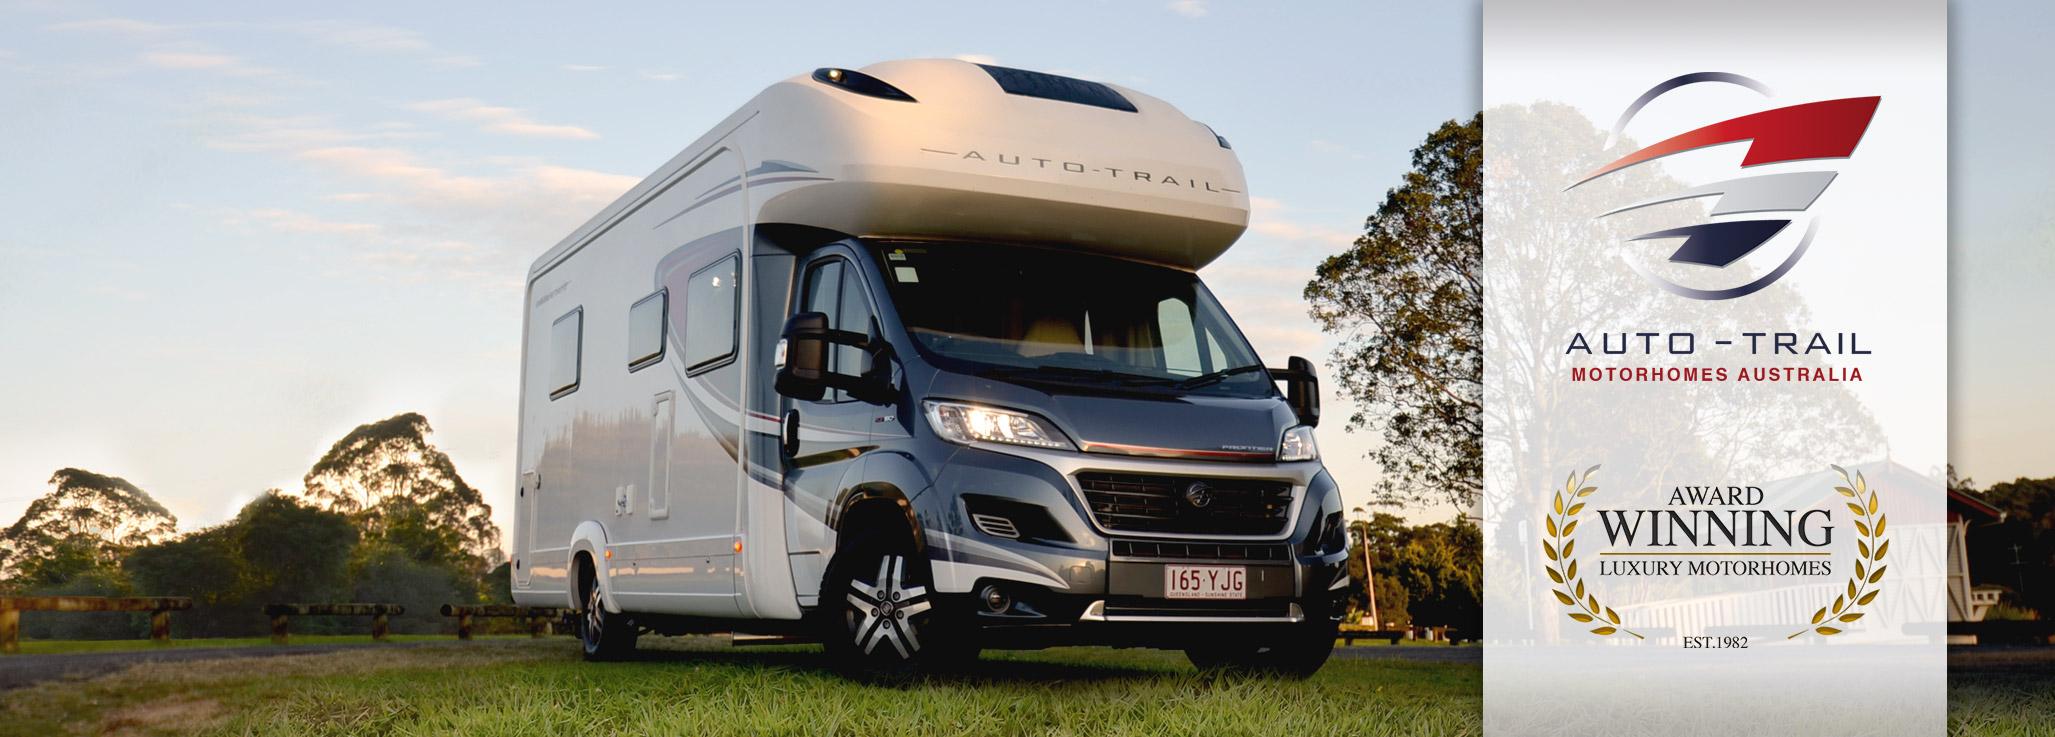 Auto-Trail Beachmont views